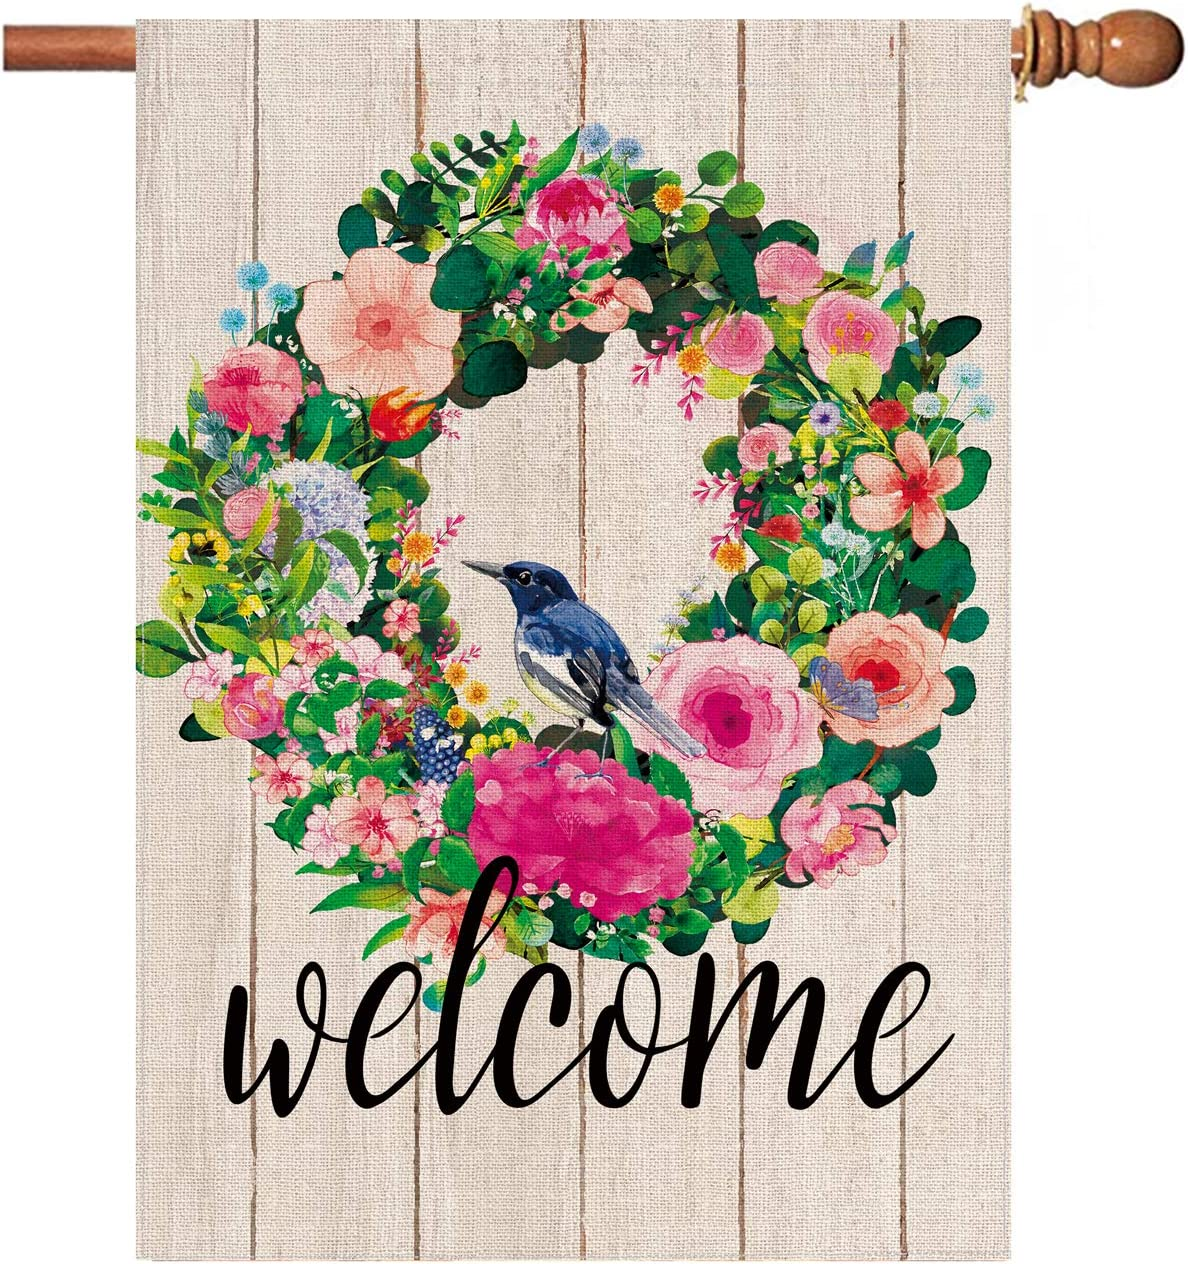 Hexagram Welcome Flower Wreath Spring Flags 28 x 40 Double Sided,Decorative Yard Burlap House Flag,Vertical Outdoor Spring and Summer Decoration Sign, Farmhouse Large Garden Flag